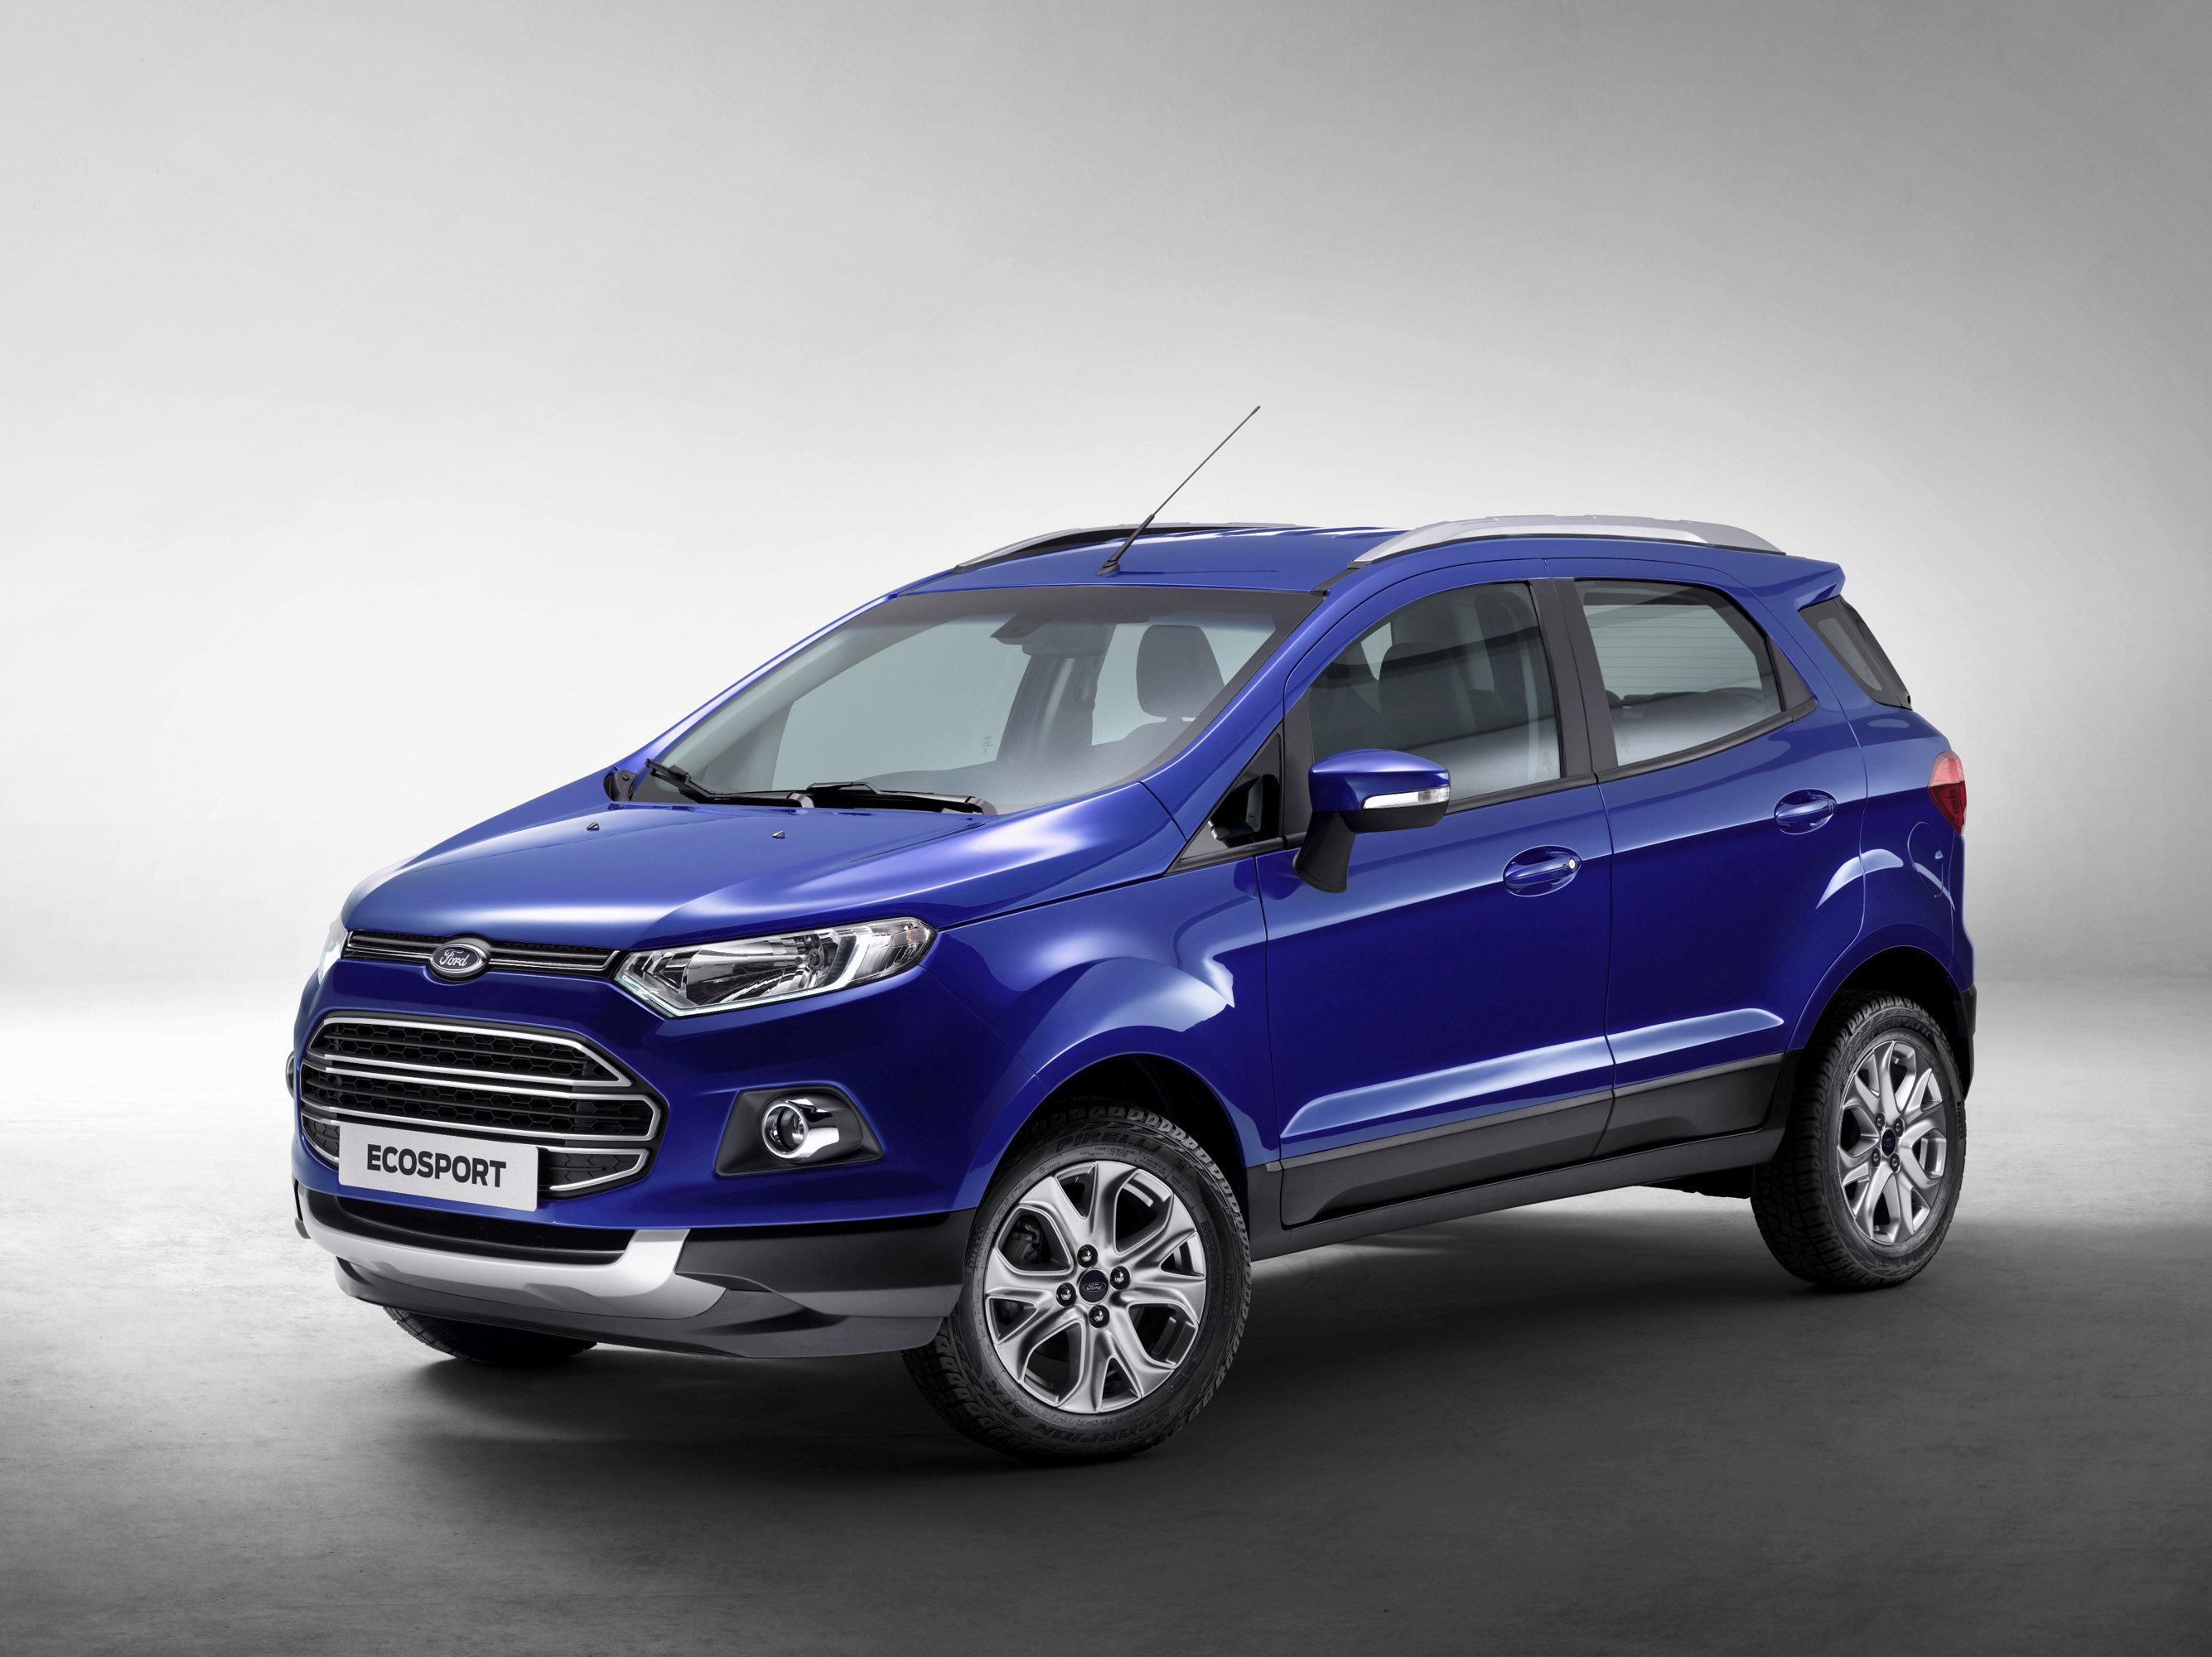 2014 Ford Ecosport Limited Edition Price